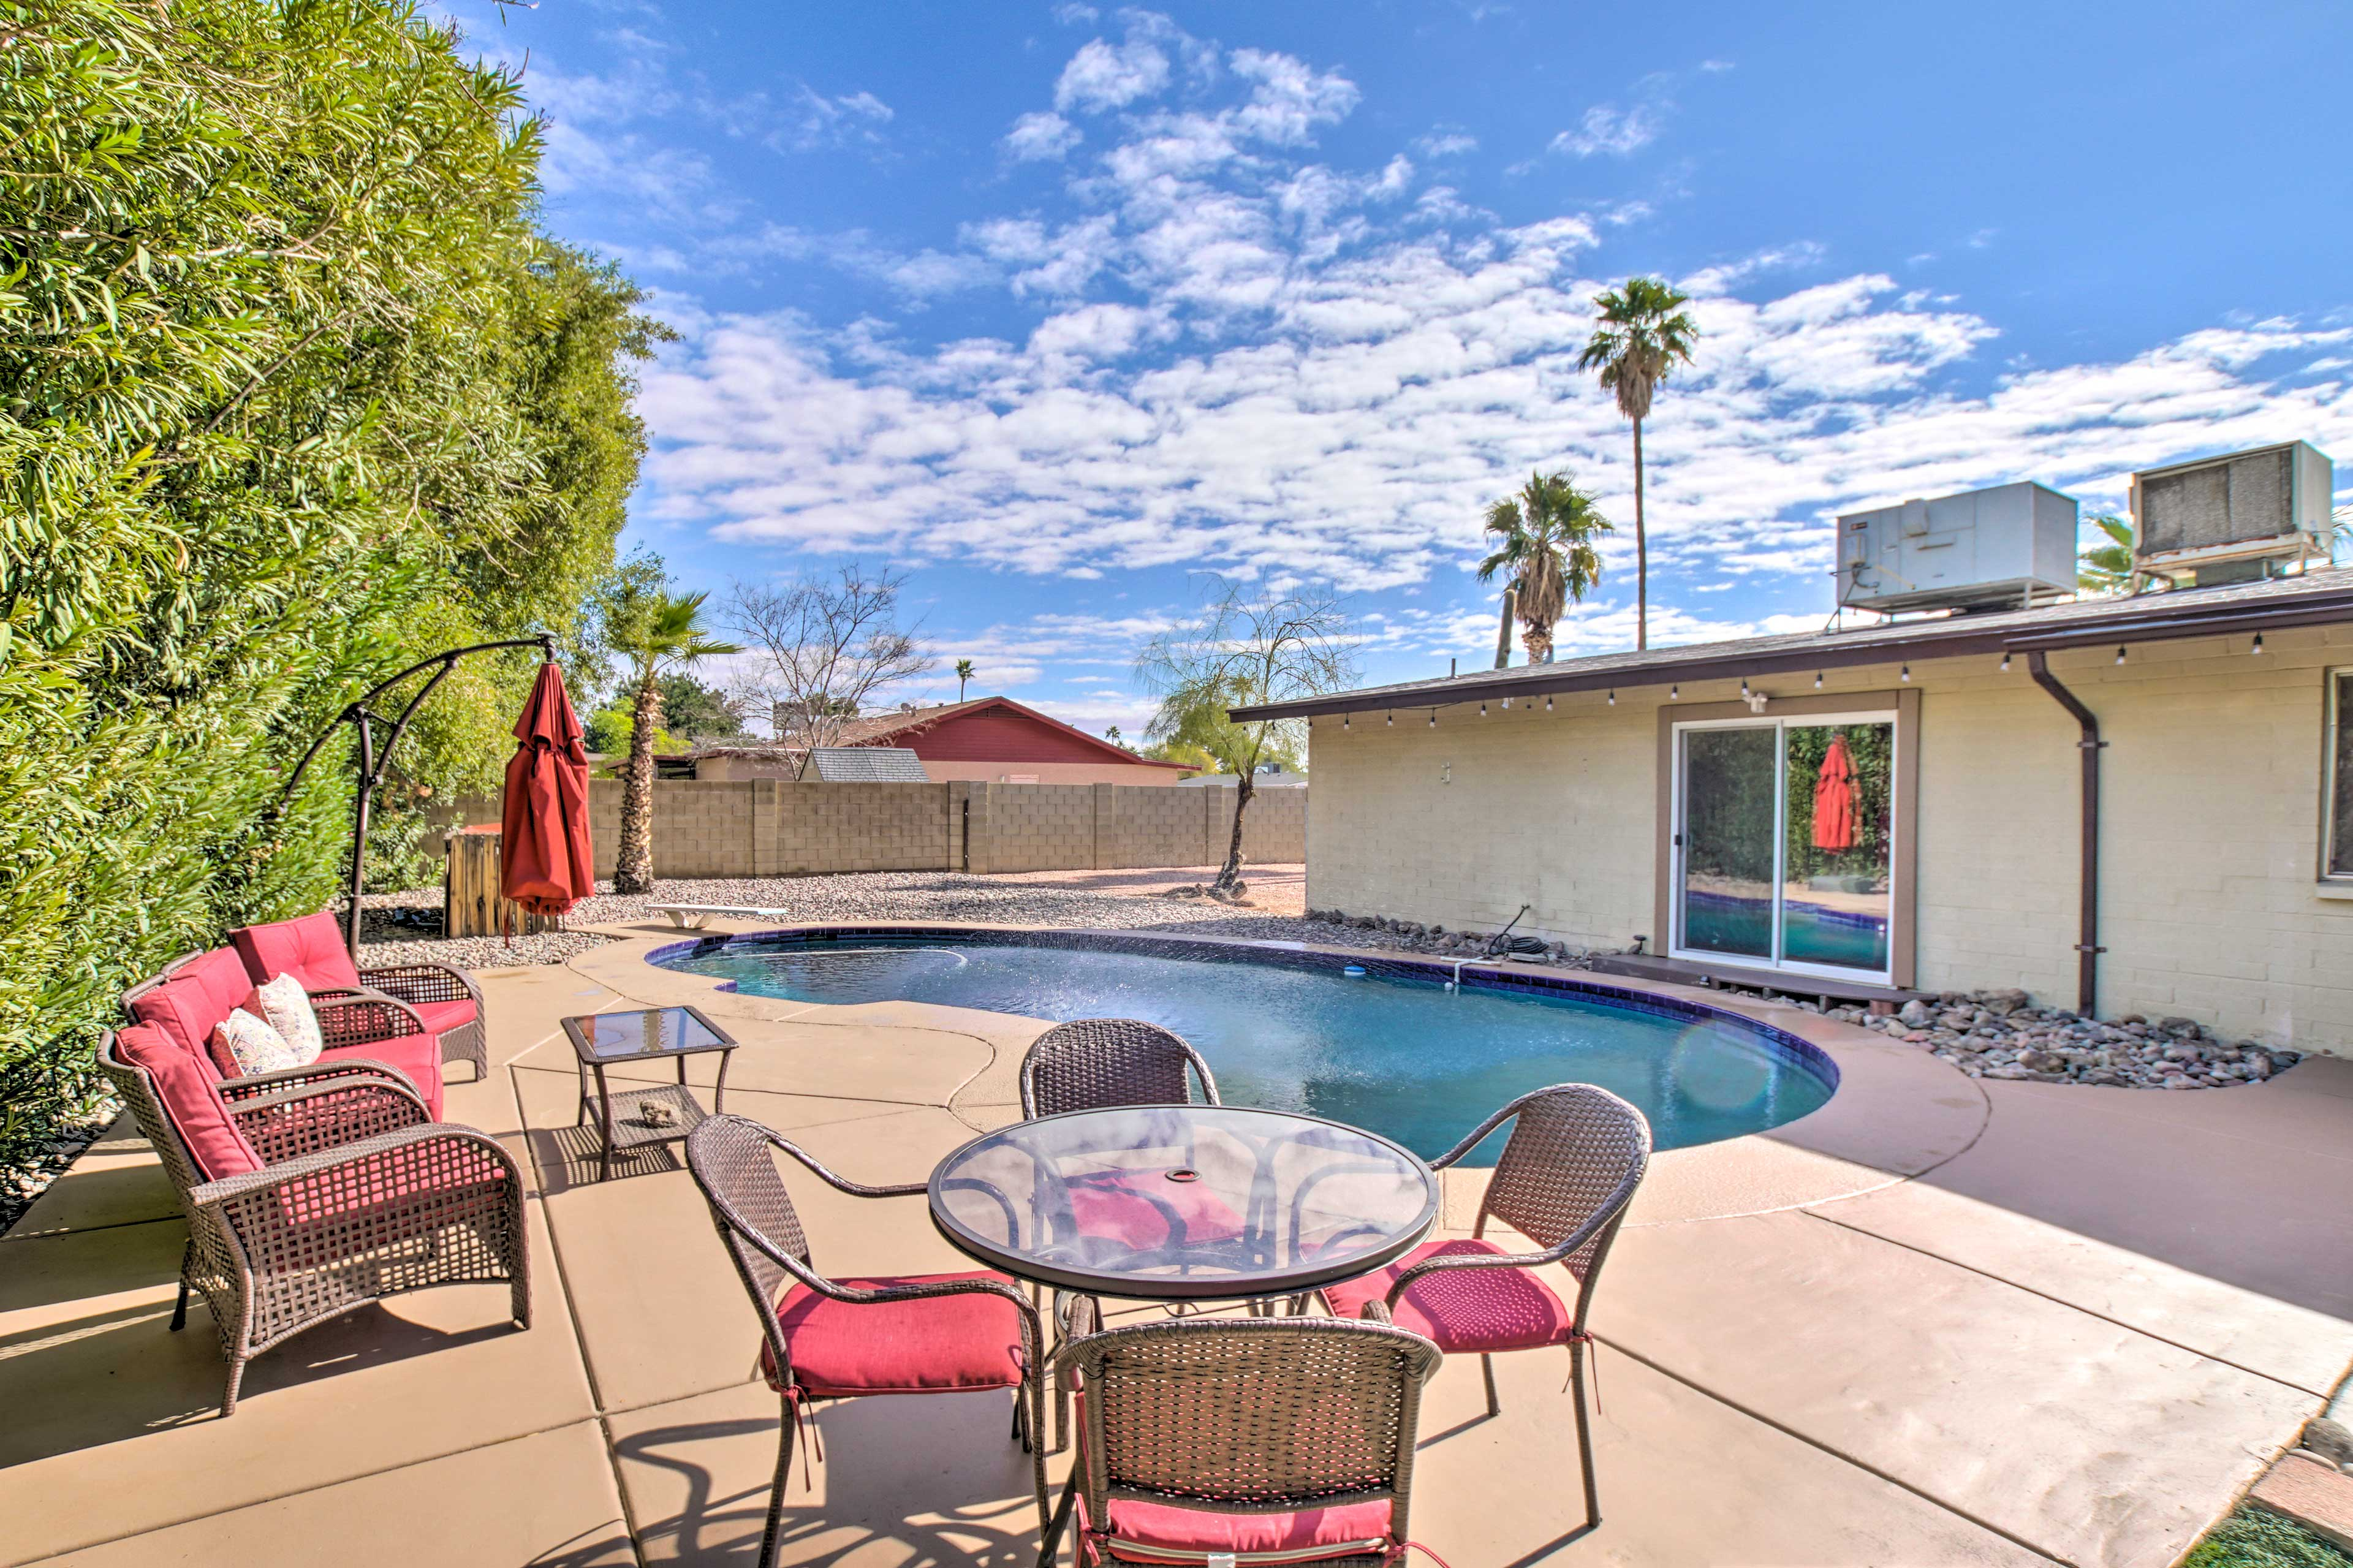 Scottsdale Vacation Rental House | 4BR | 2BA  | 2,066 Sq Ft | Step-Free Access